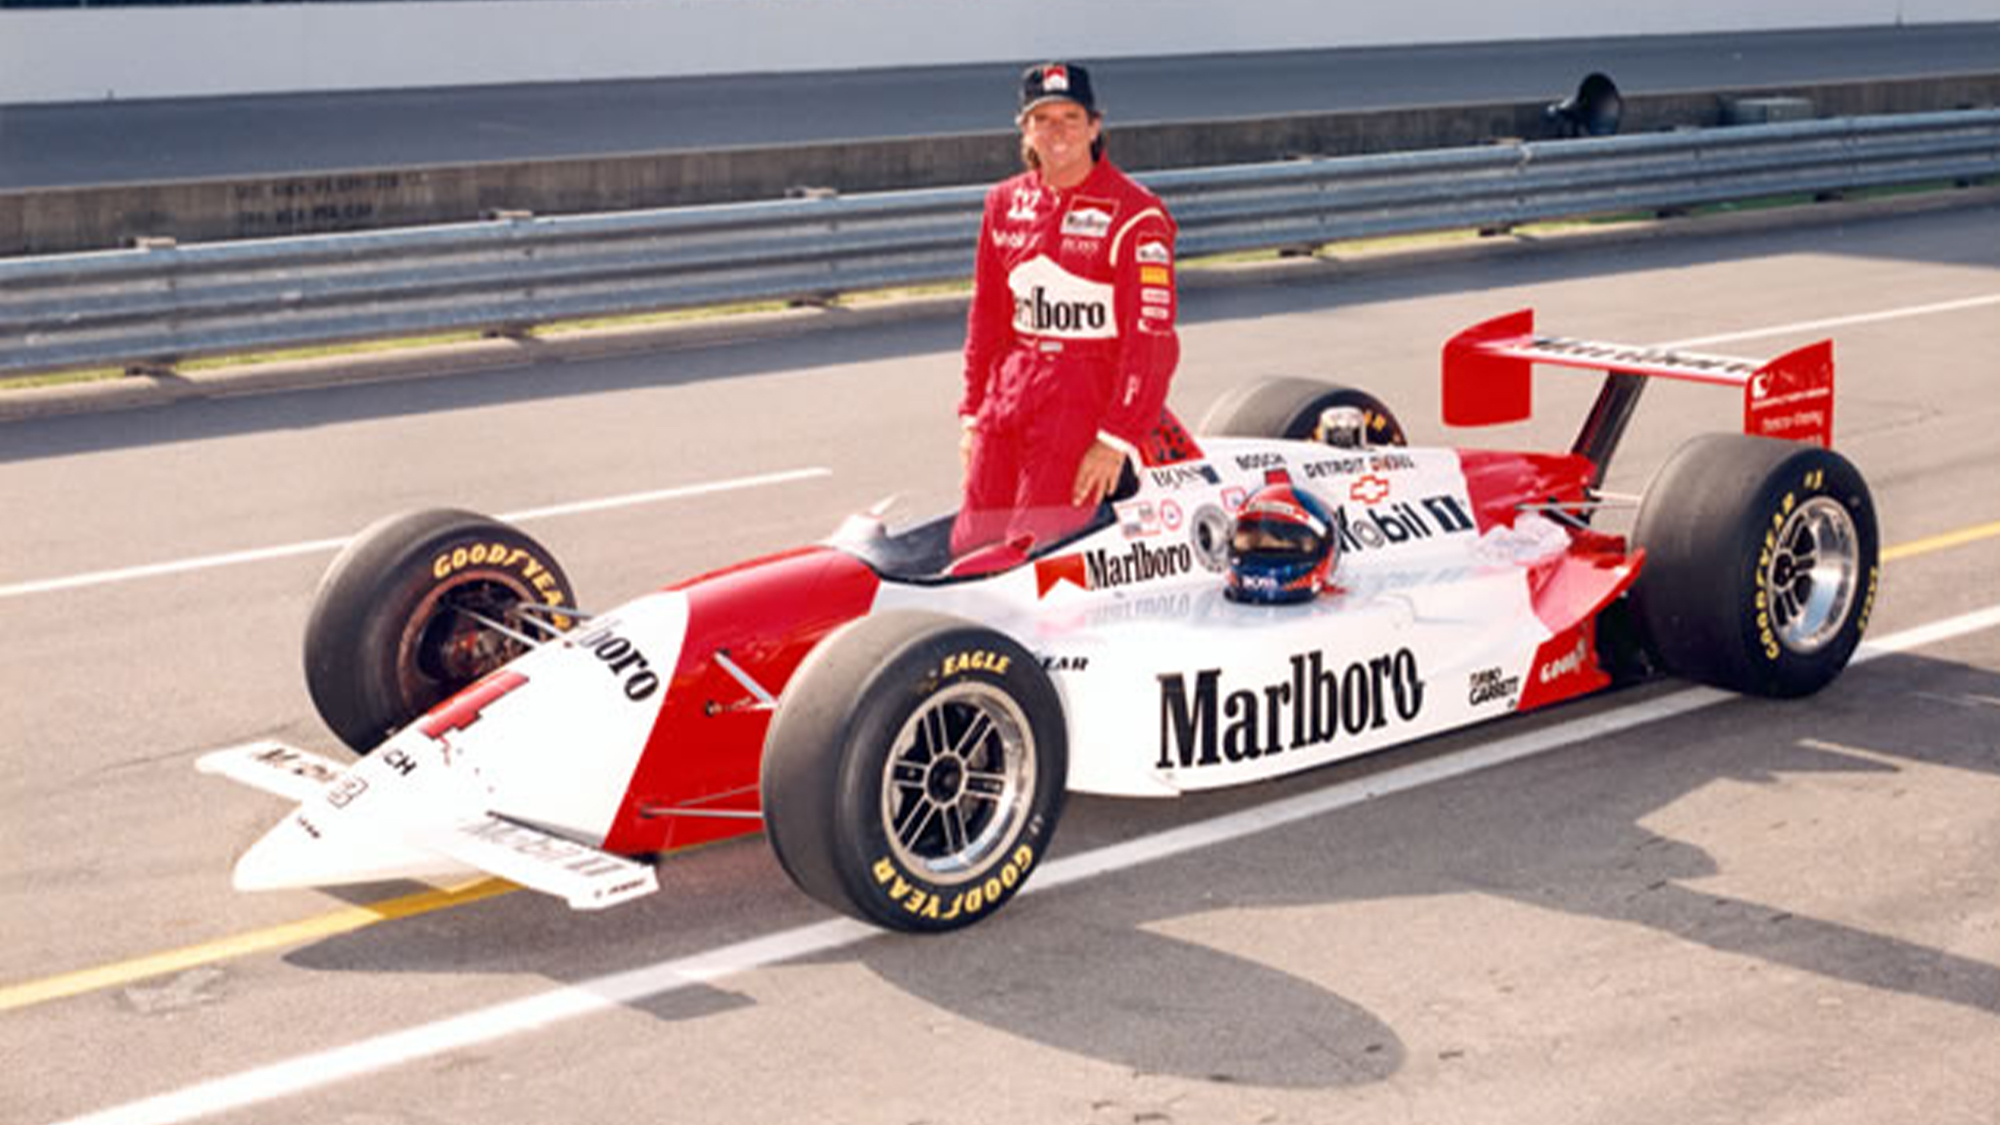 Emerson Fittipaldi at the 1993 Indy 500